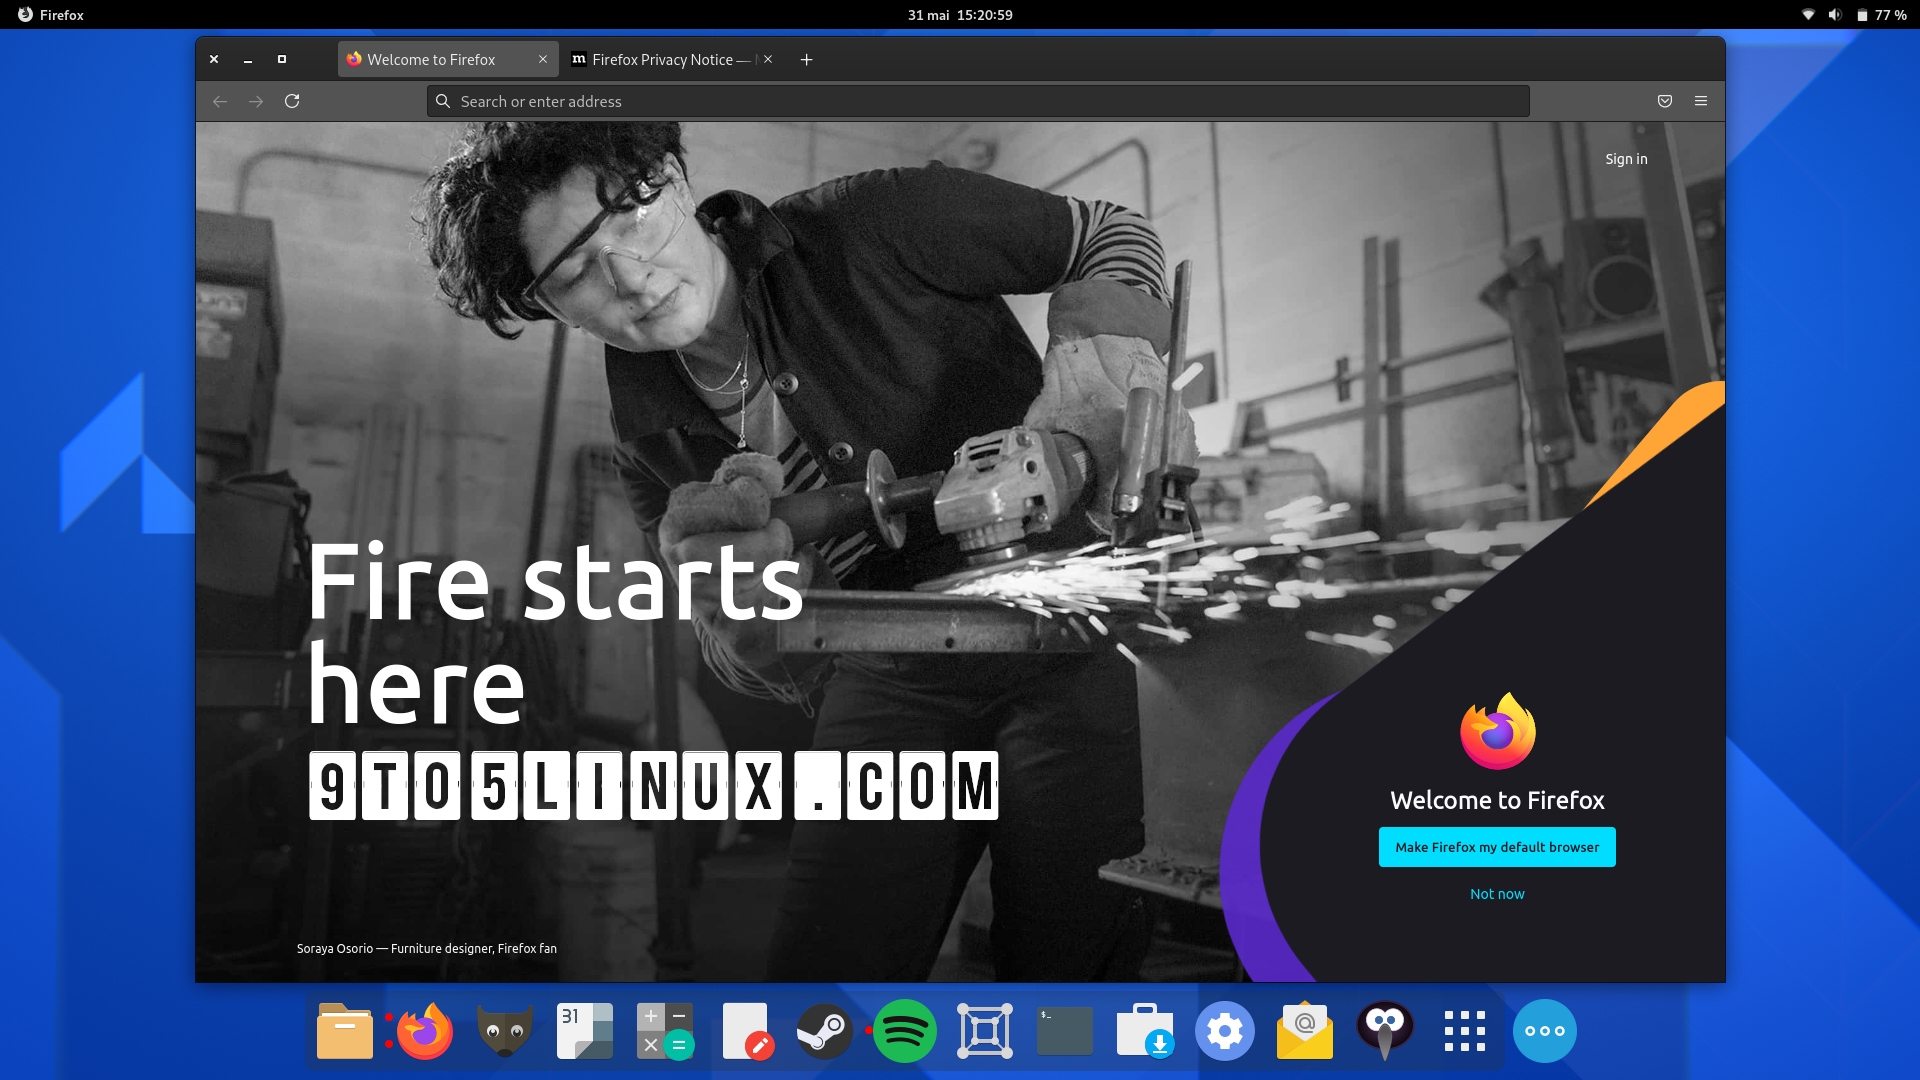 Firefox 89.0.1 Released to Improve WebRender Performance, Fix Scrollbars on GTK Themes - 9to5Linux